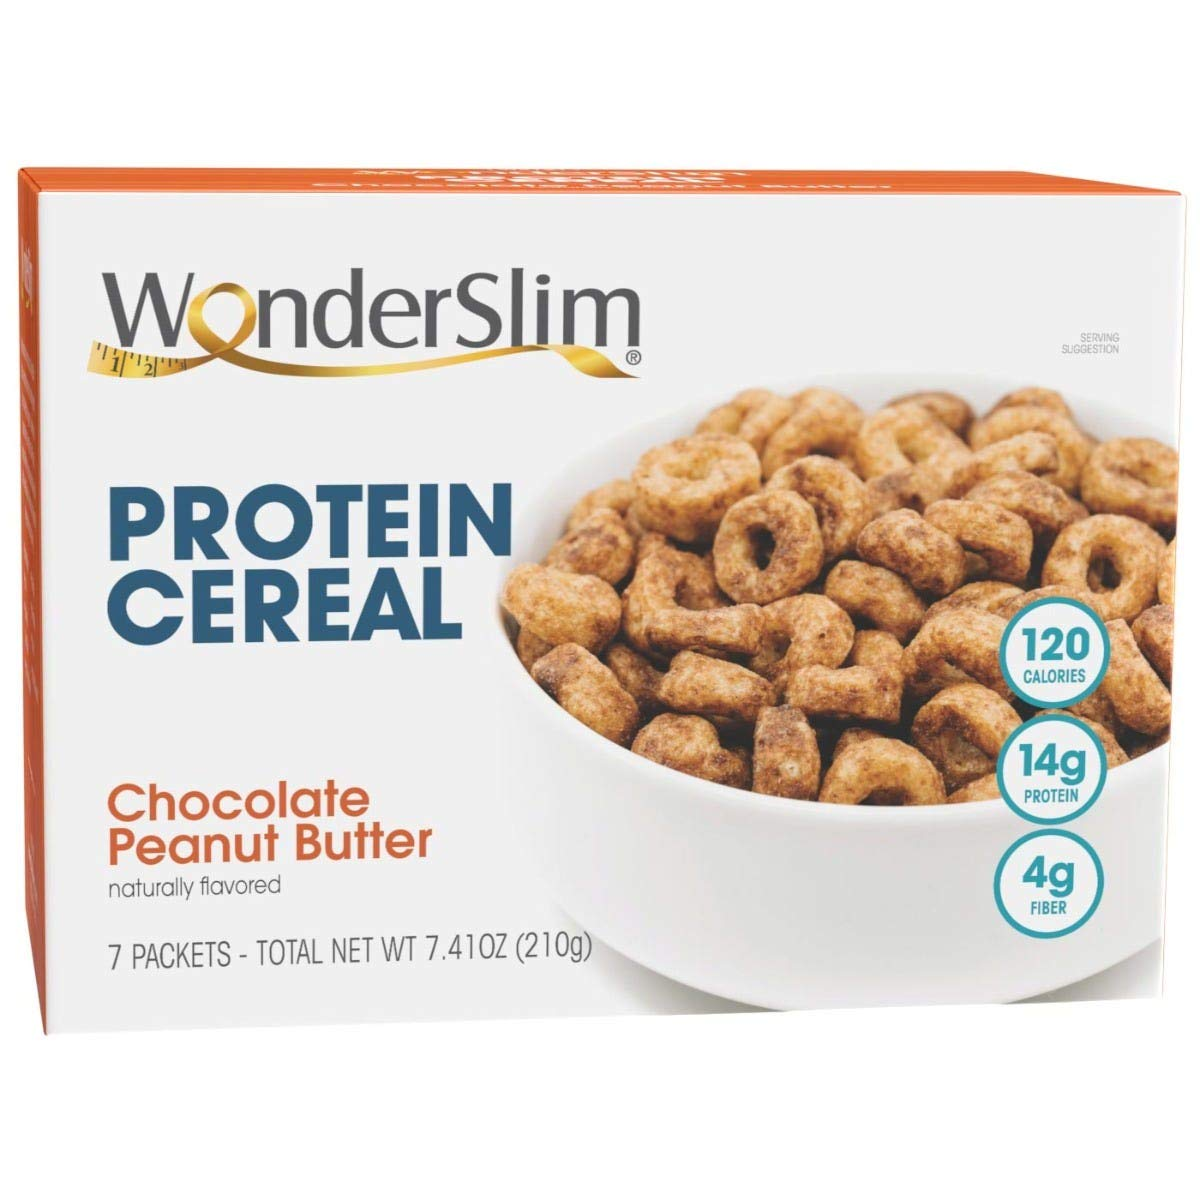 WonderSlim Protein Cereal Animer and price revision Seasonal Wrap Introduction Chocolate Peanut Calorie Low - Butter